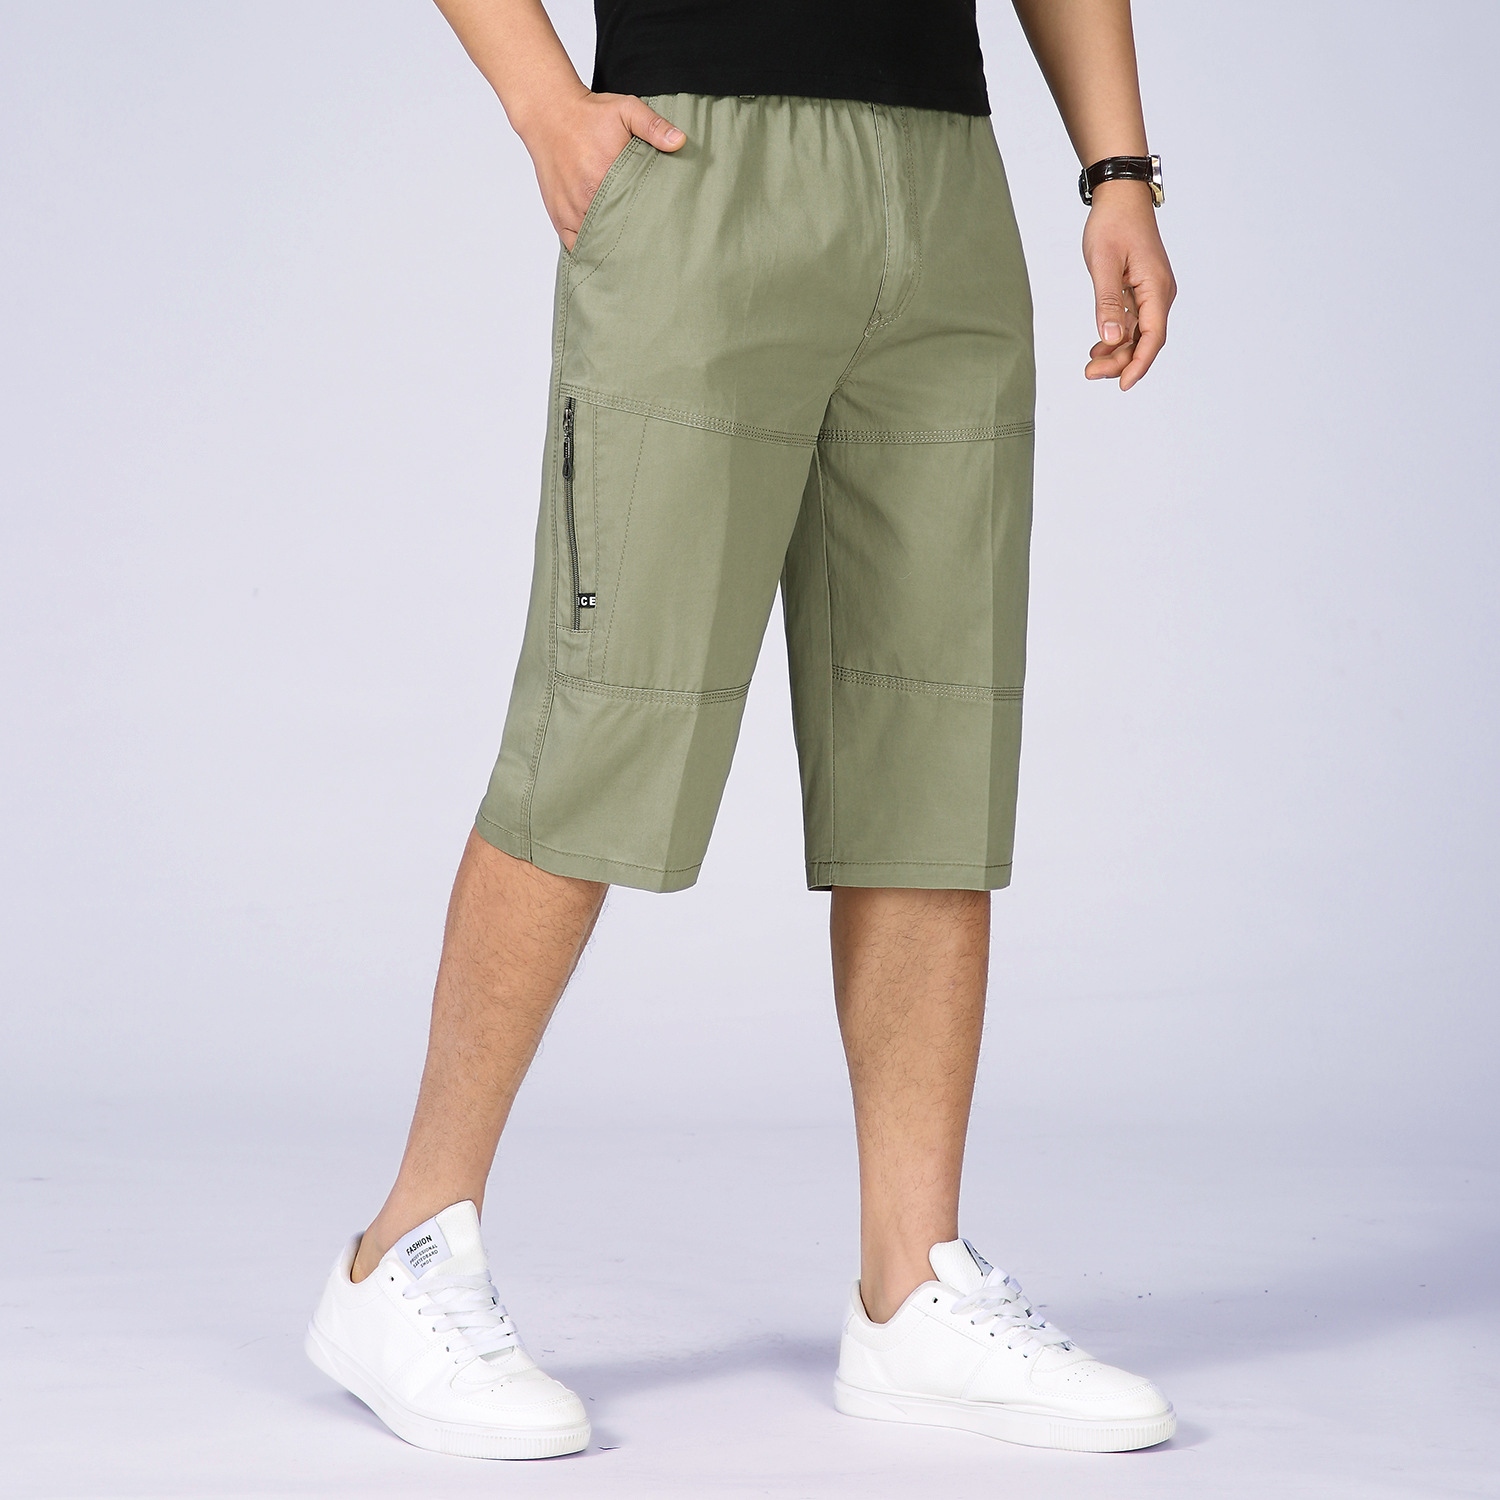 Hot Summer Shorts MENS Mans Army Cargo Work Casual Wash Pocket Short Men Fashion Joggers Overall military Plus size